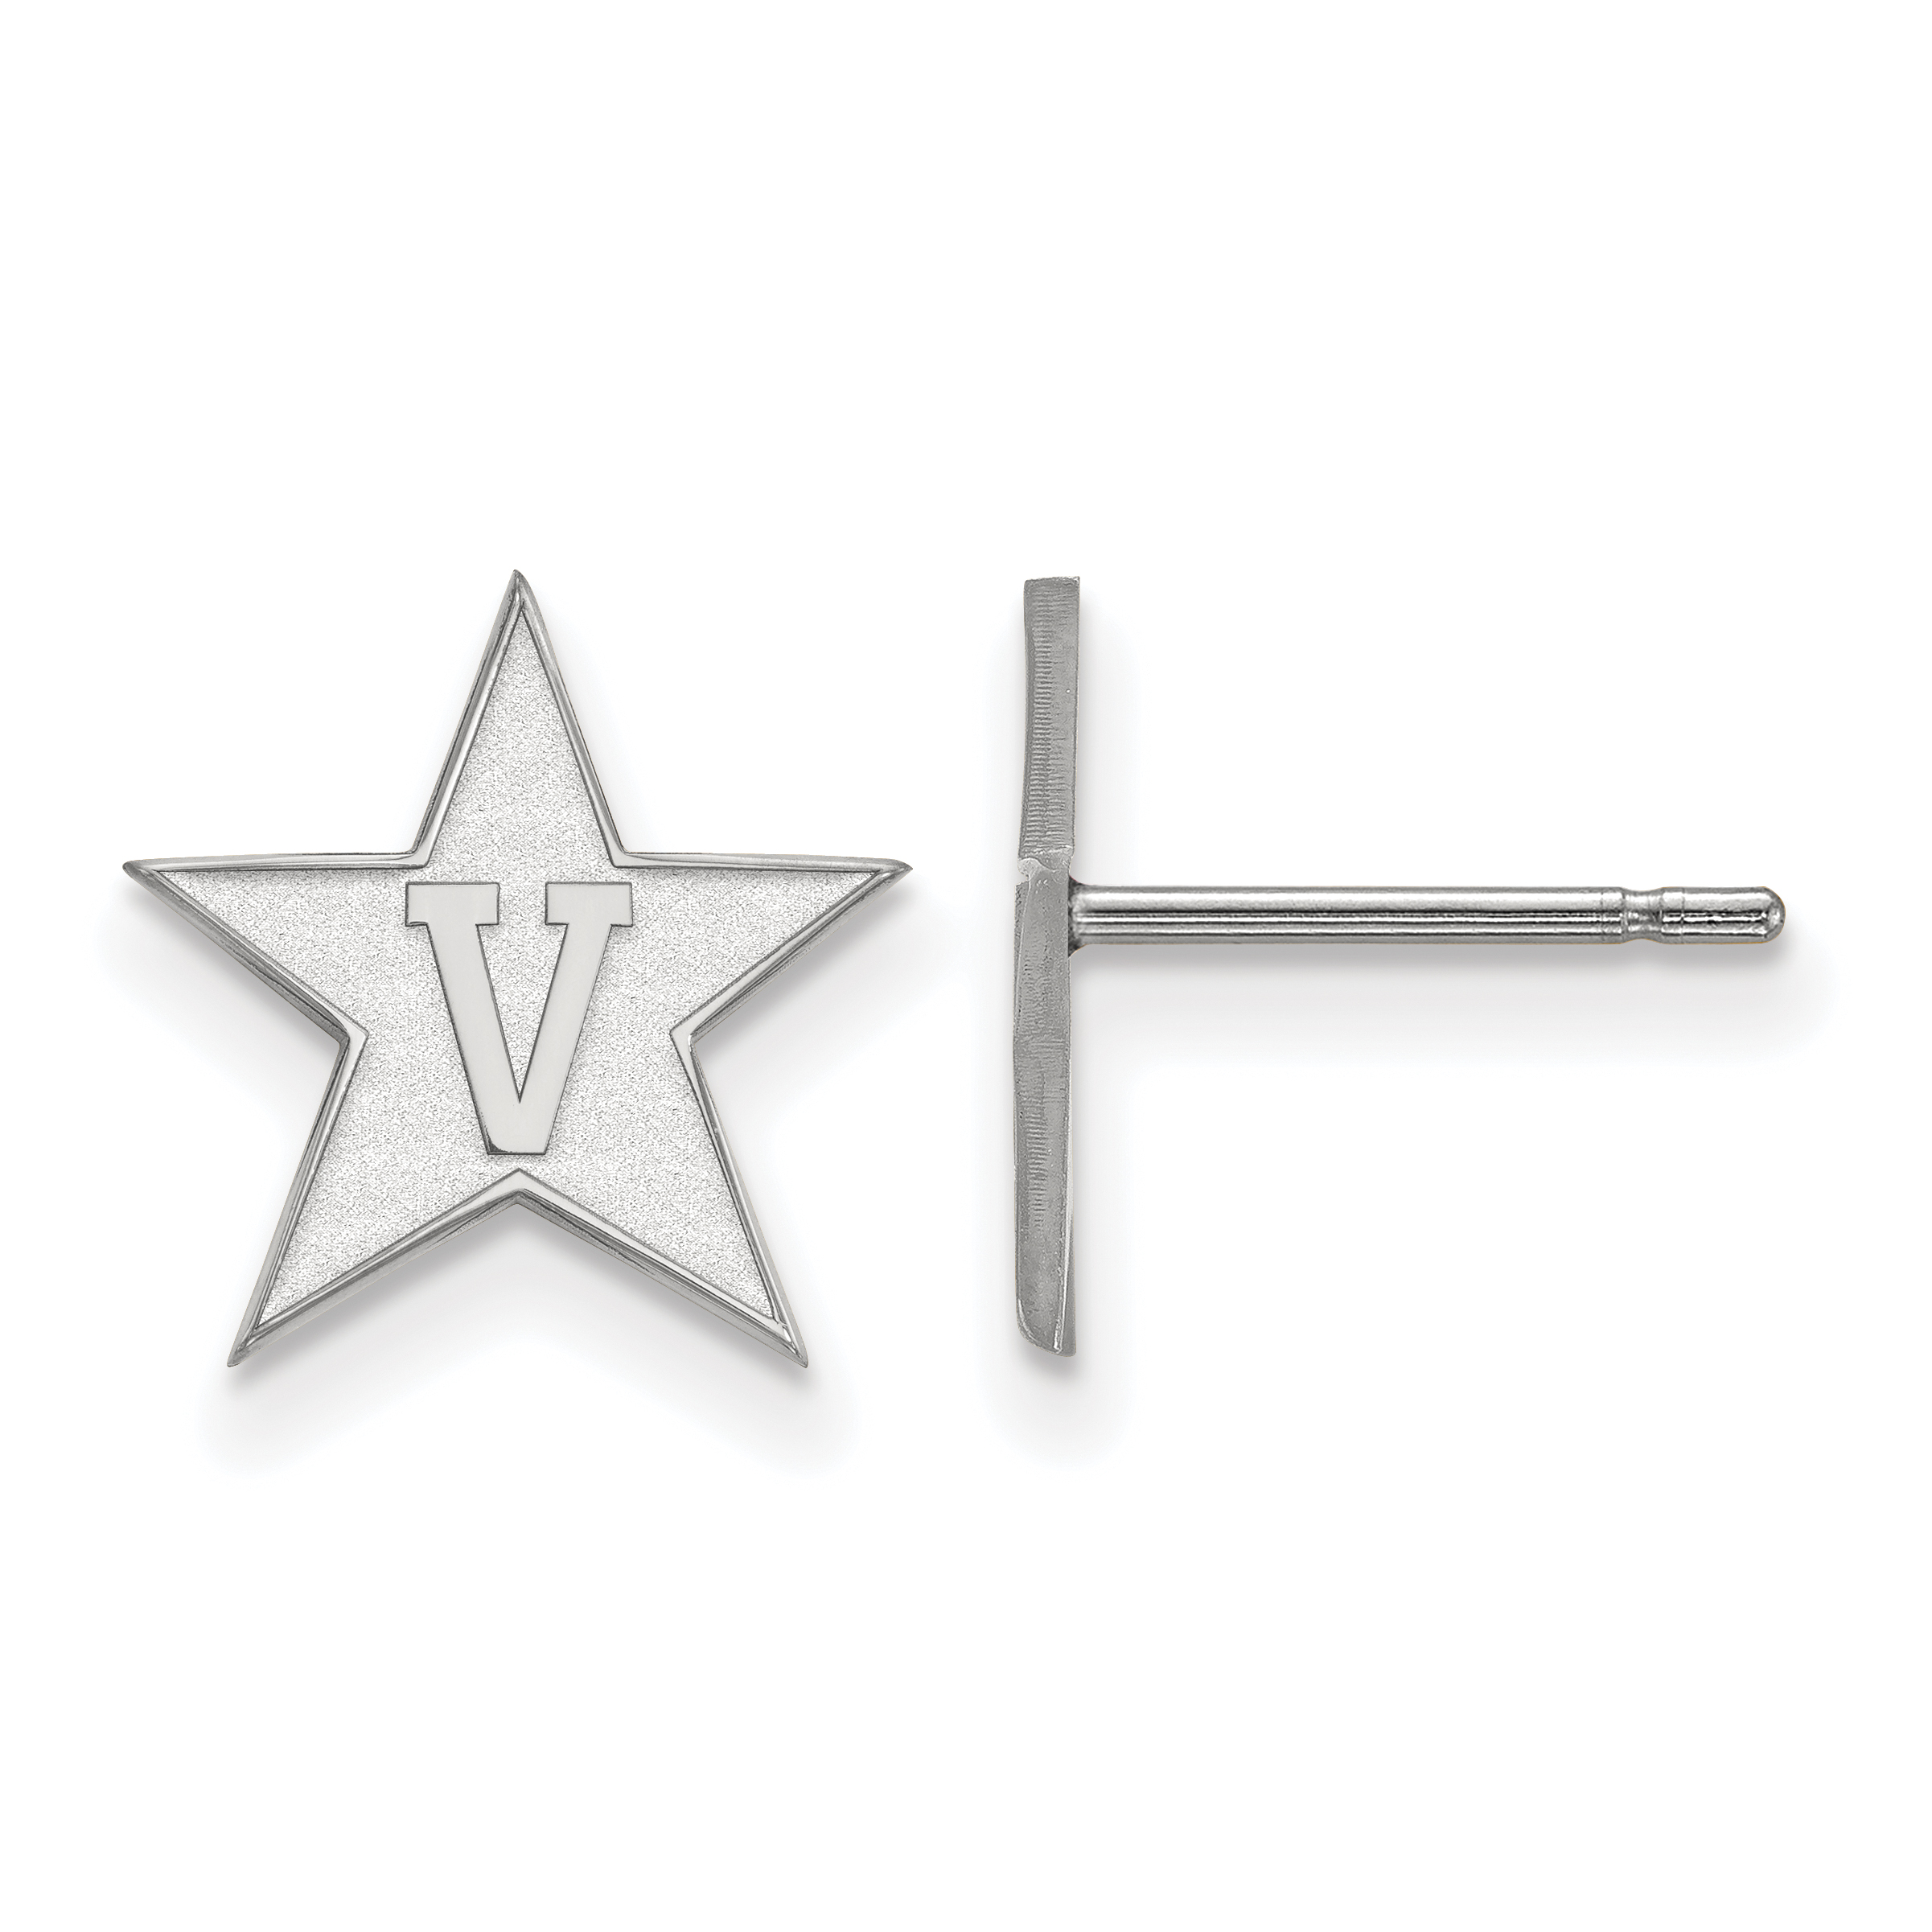 10kw Vanderbilt University Small Post Earrings. weight: 0.79, Lengh: 12mm